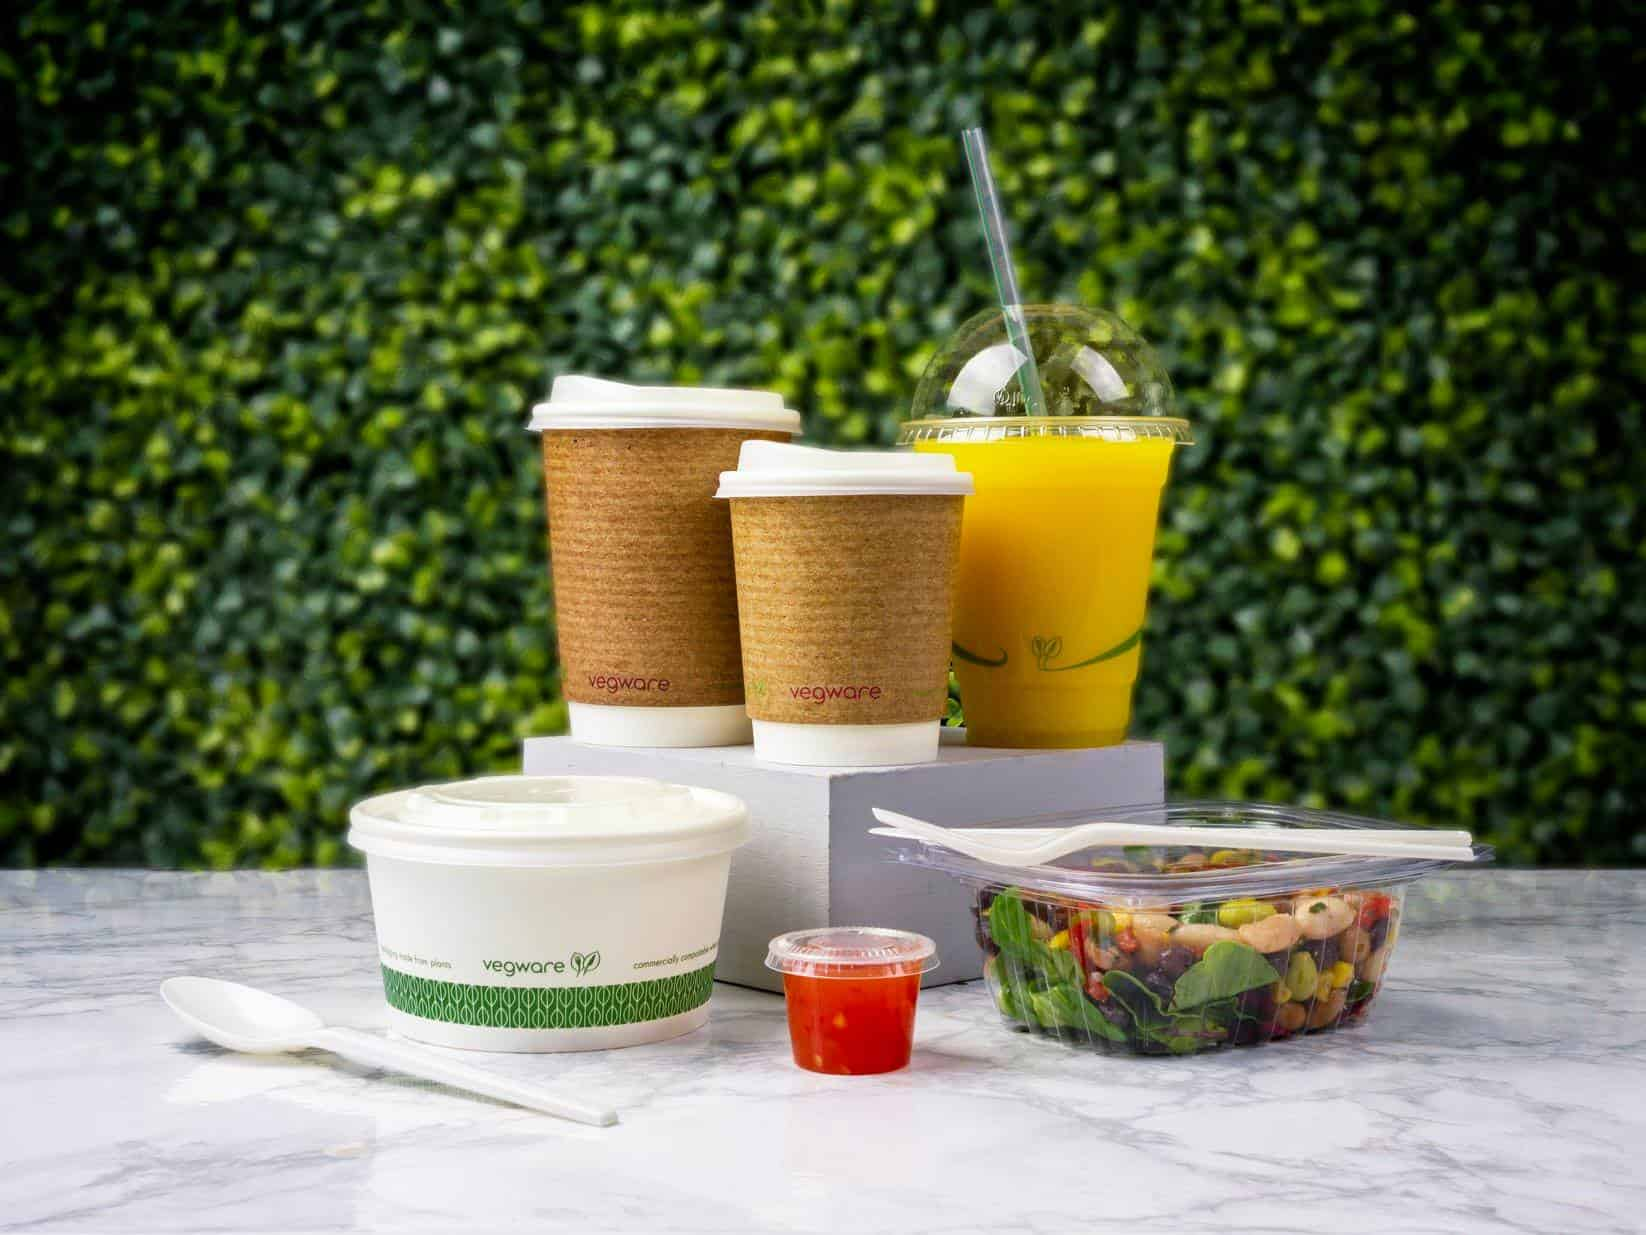 Understanding packaging with Vegware - what's recyclable